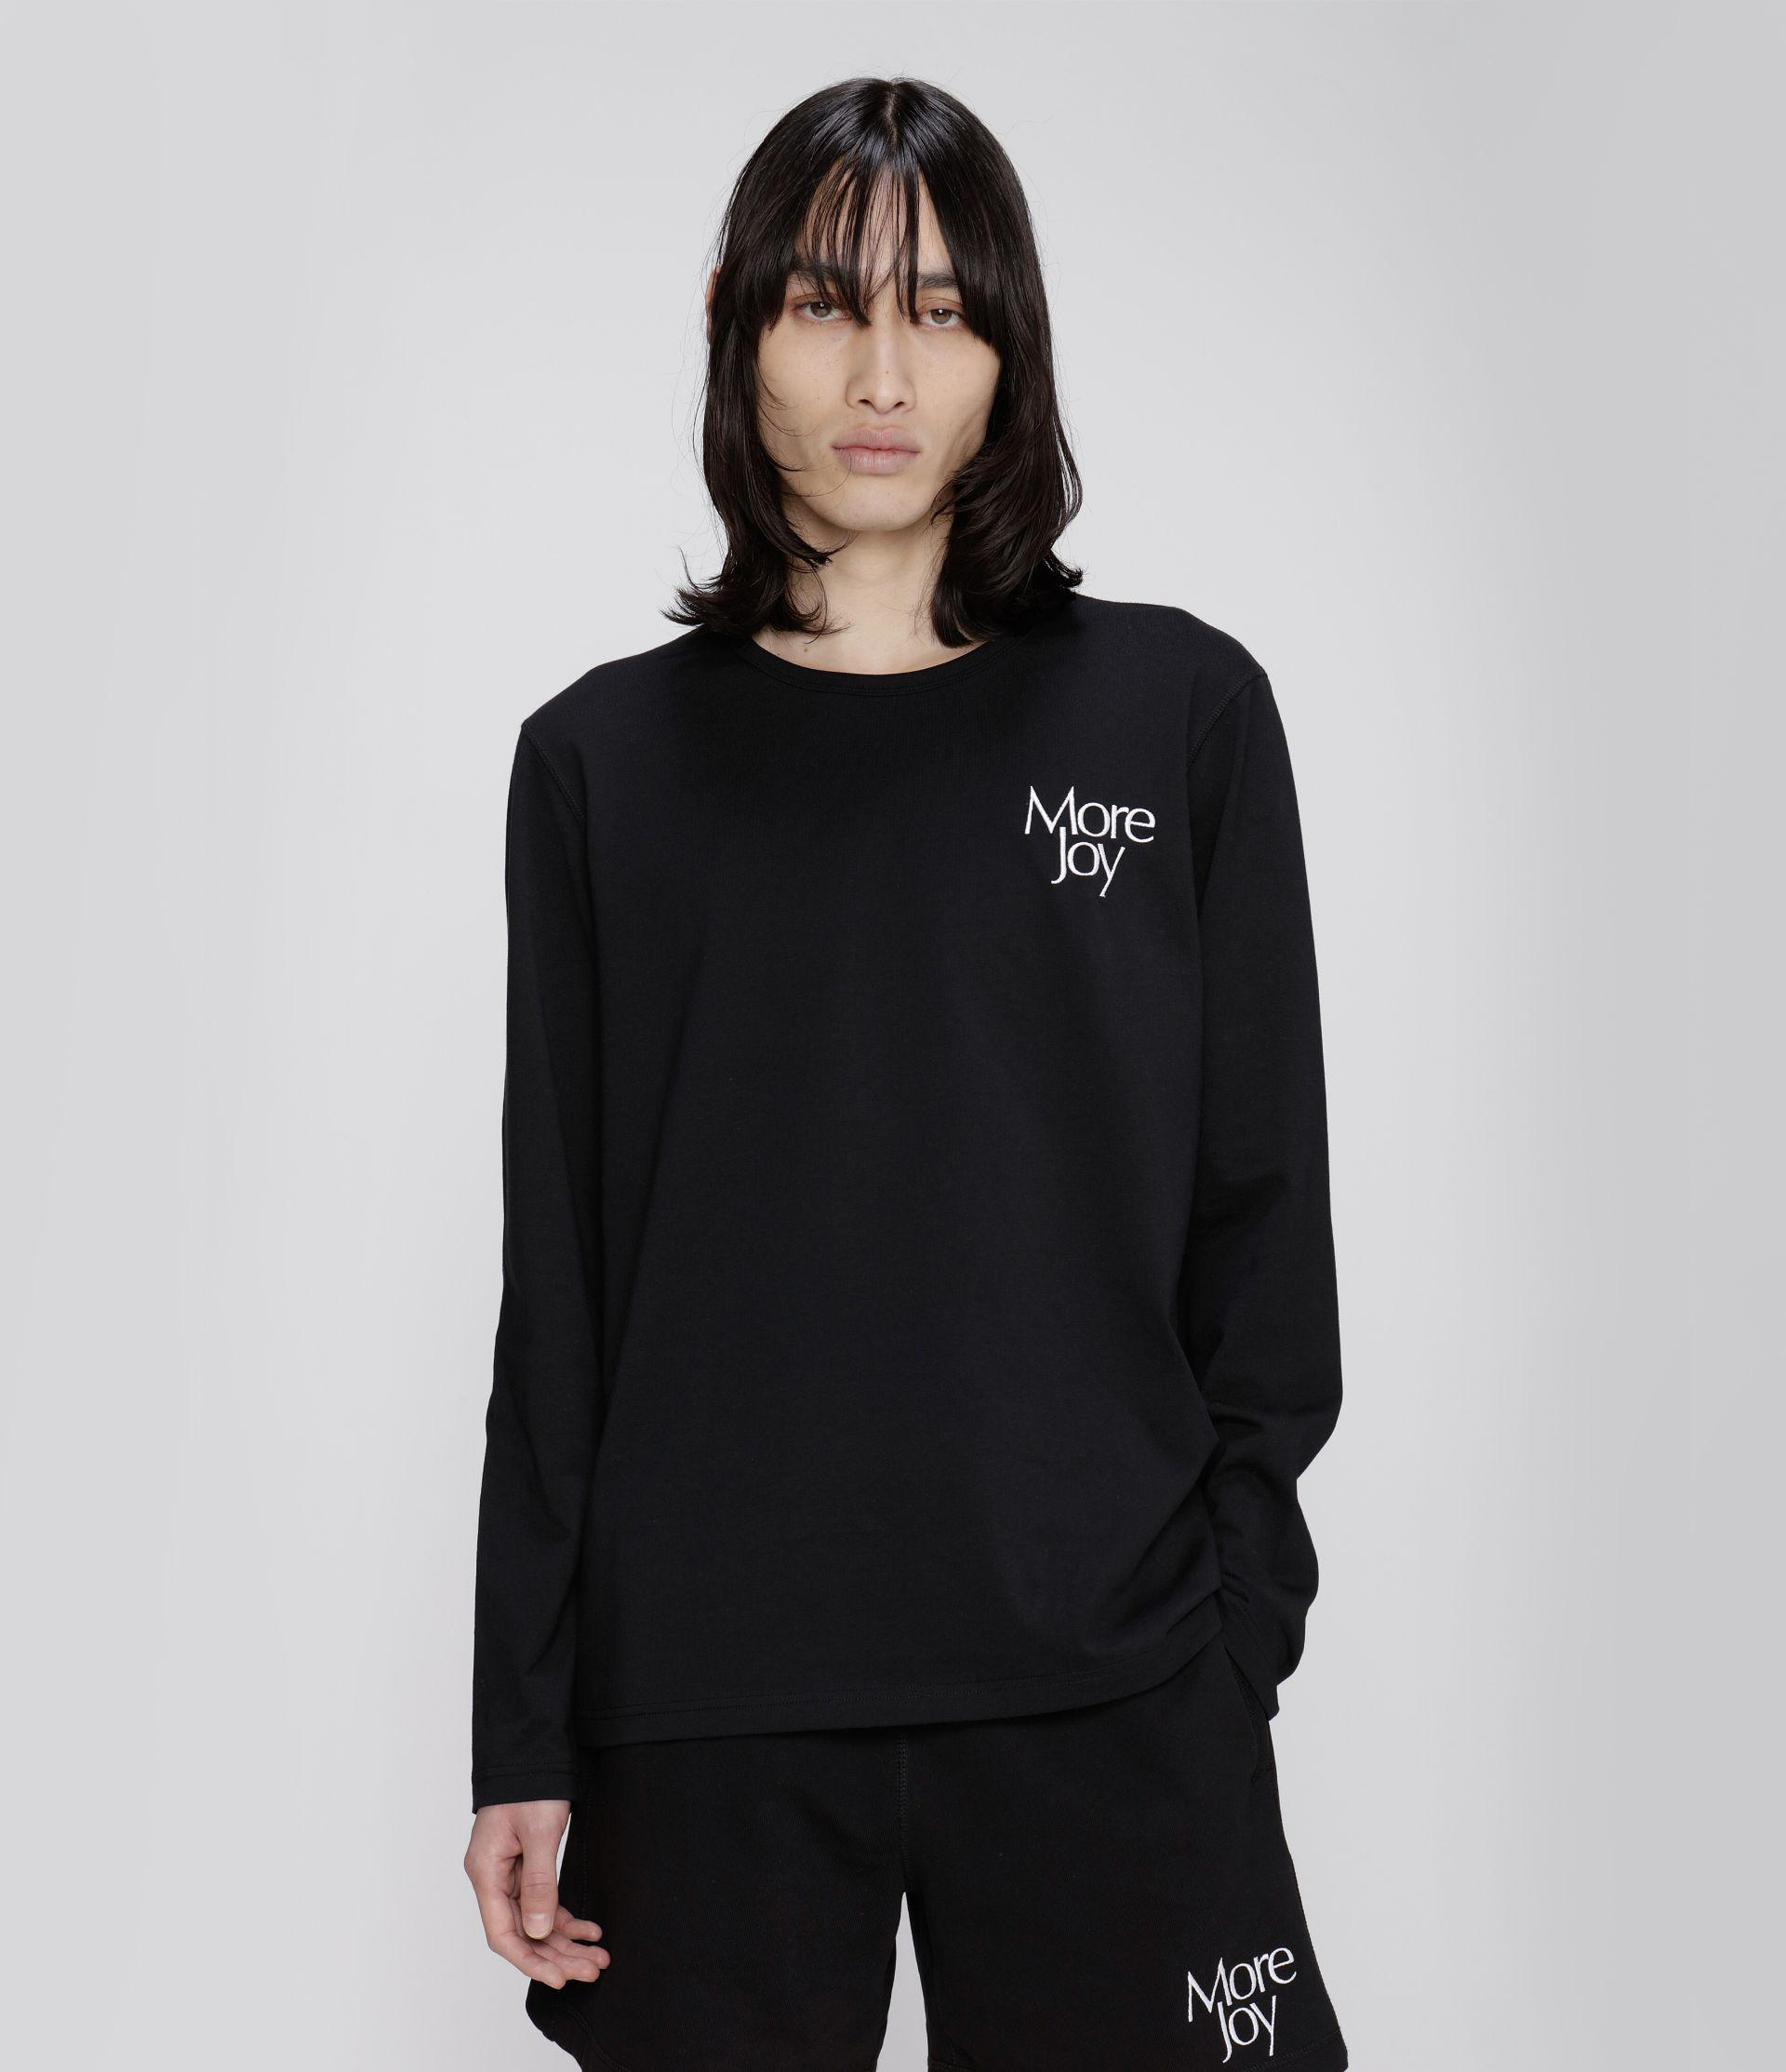 More Joy embroidered long sleeve t-shirt 1